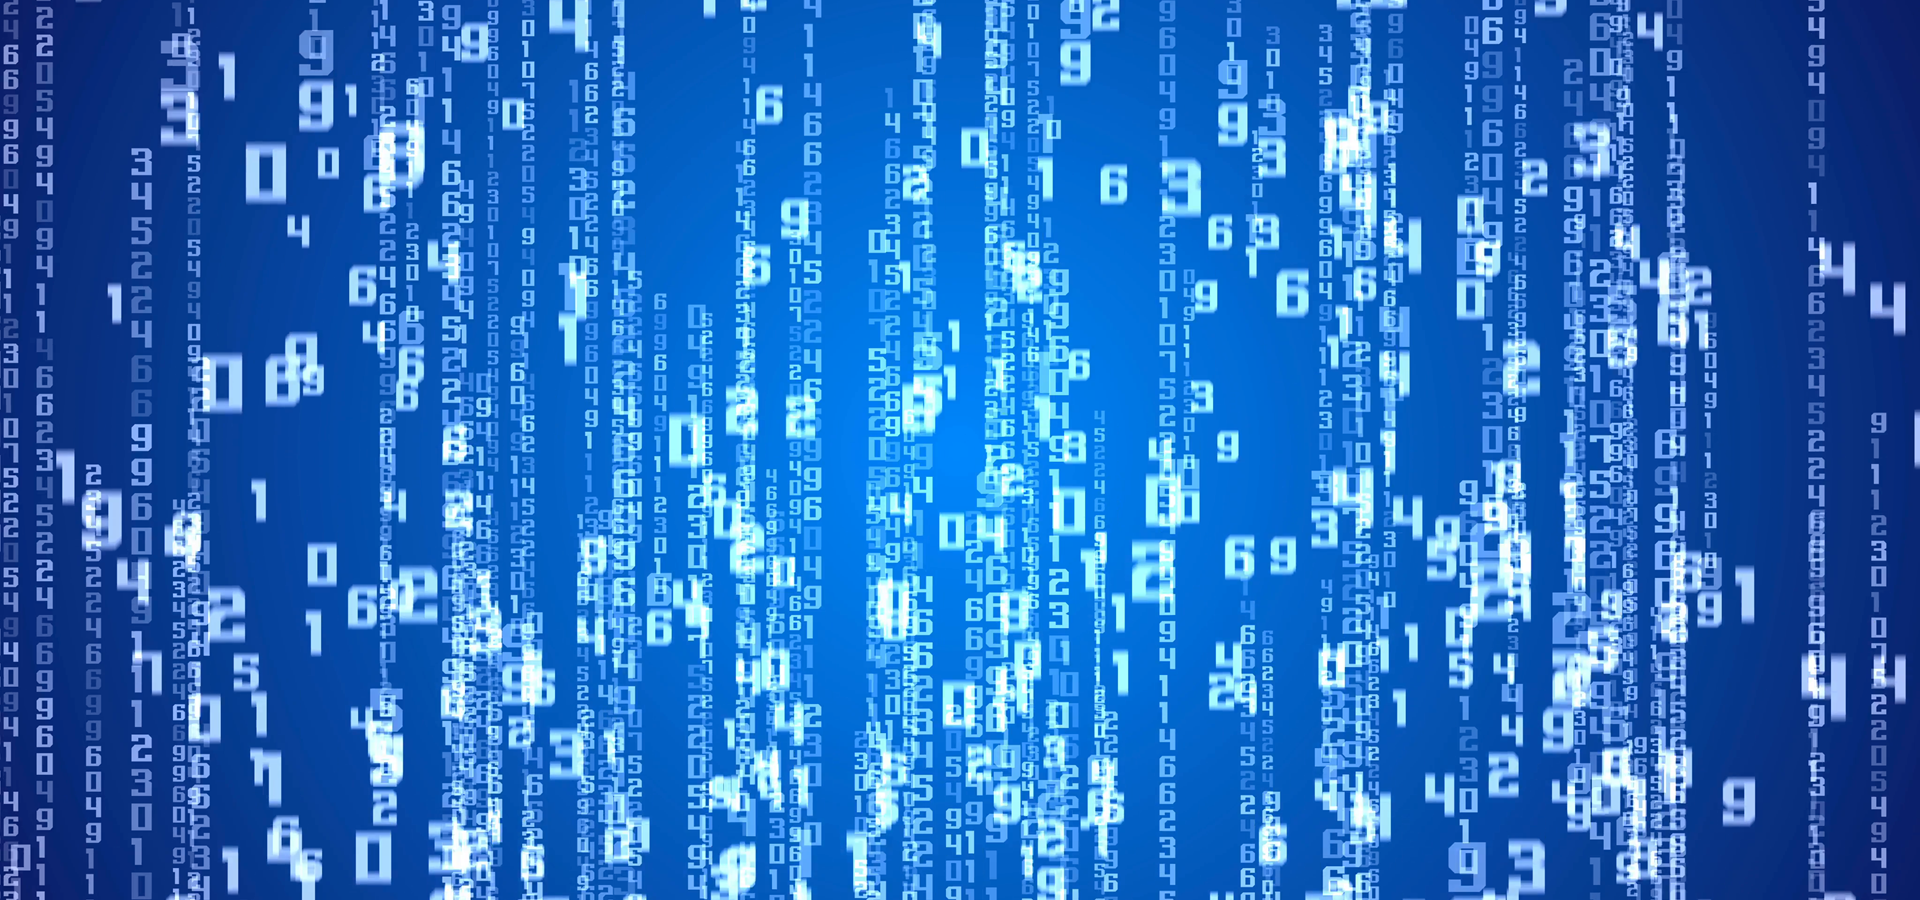 matrix-background-with-the-blue-symbols_ekbfeosbe__F0004.png